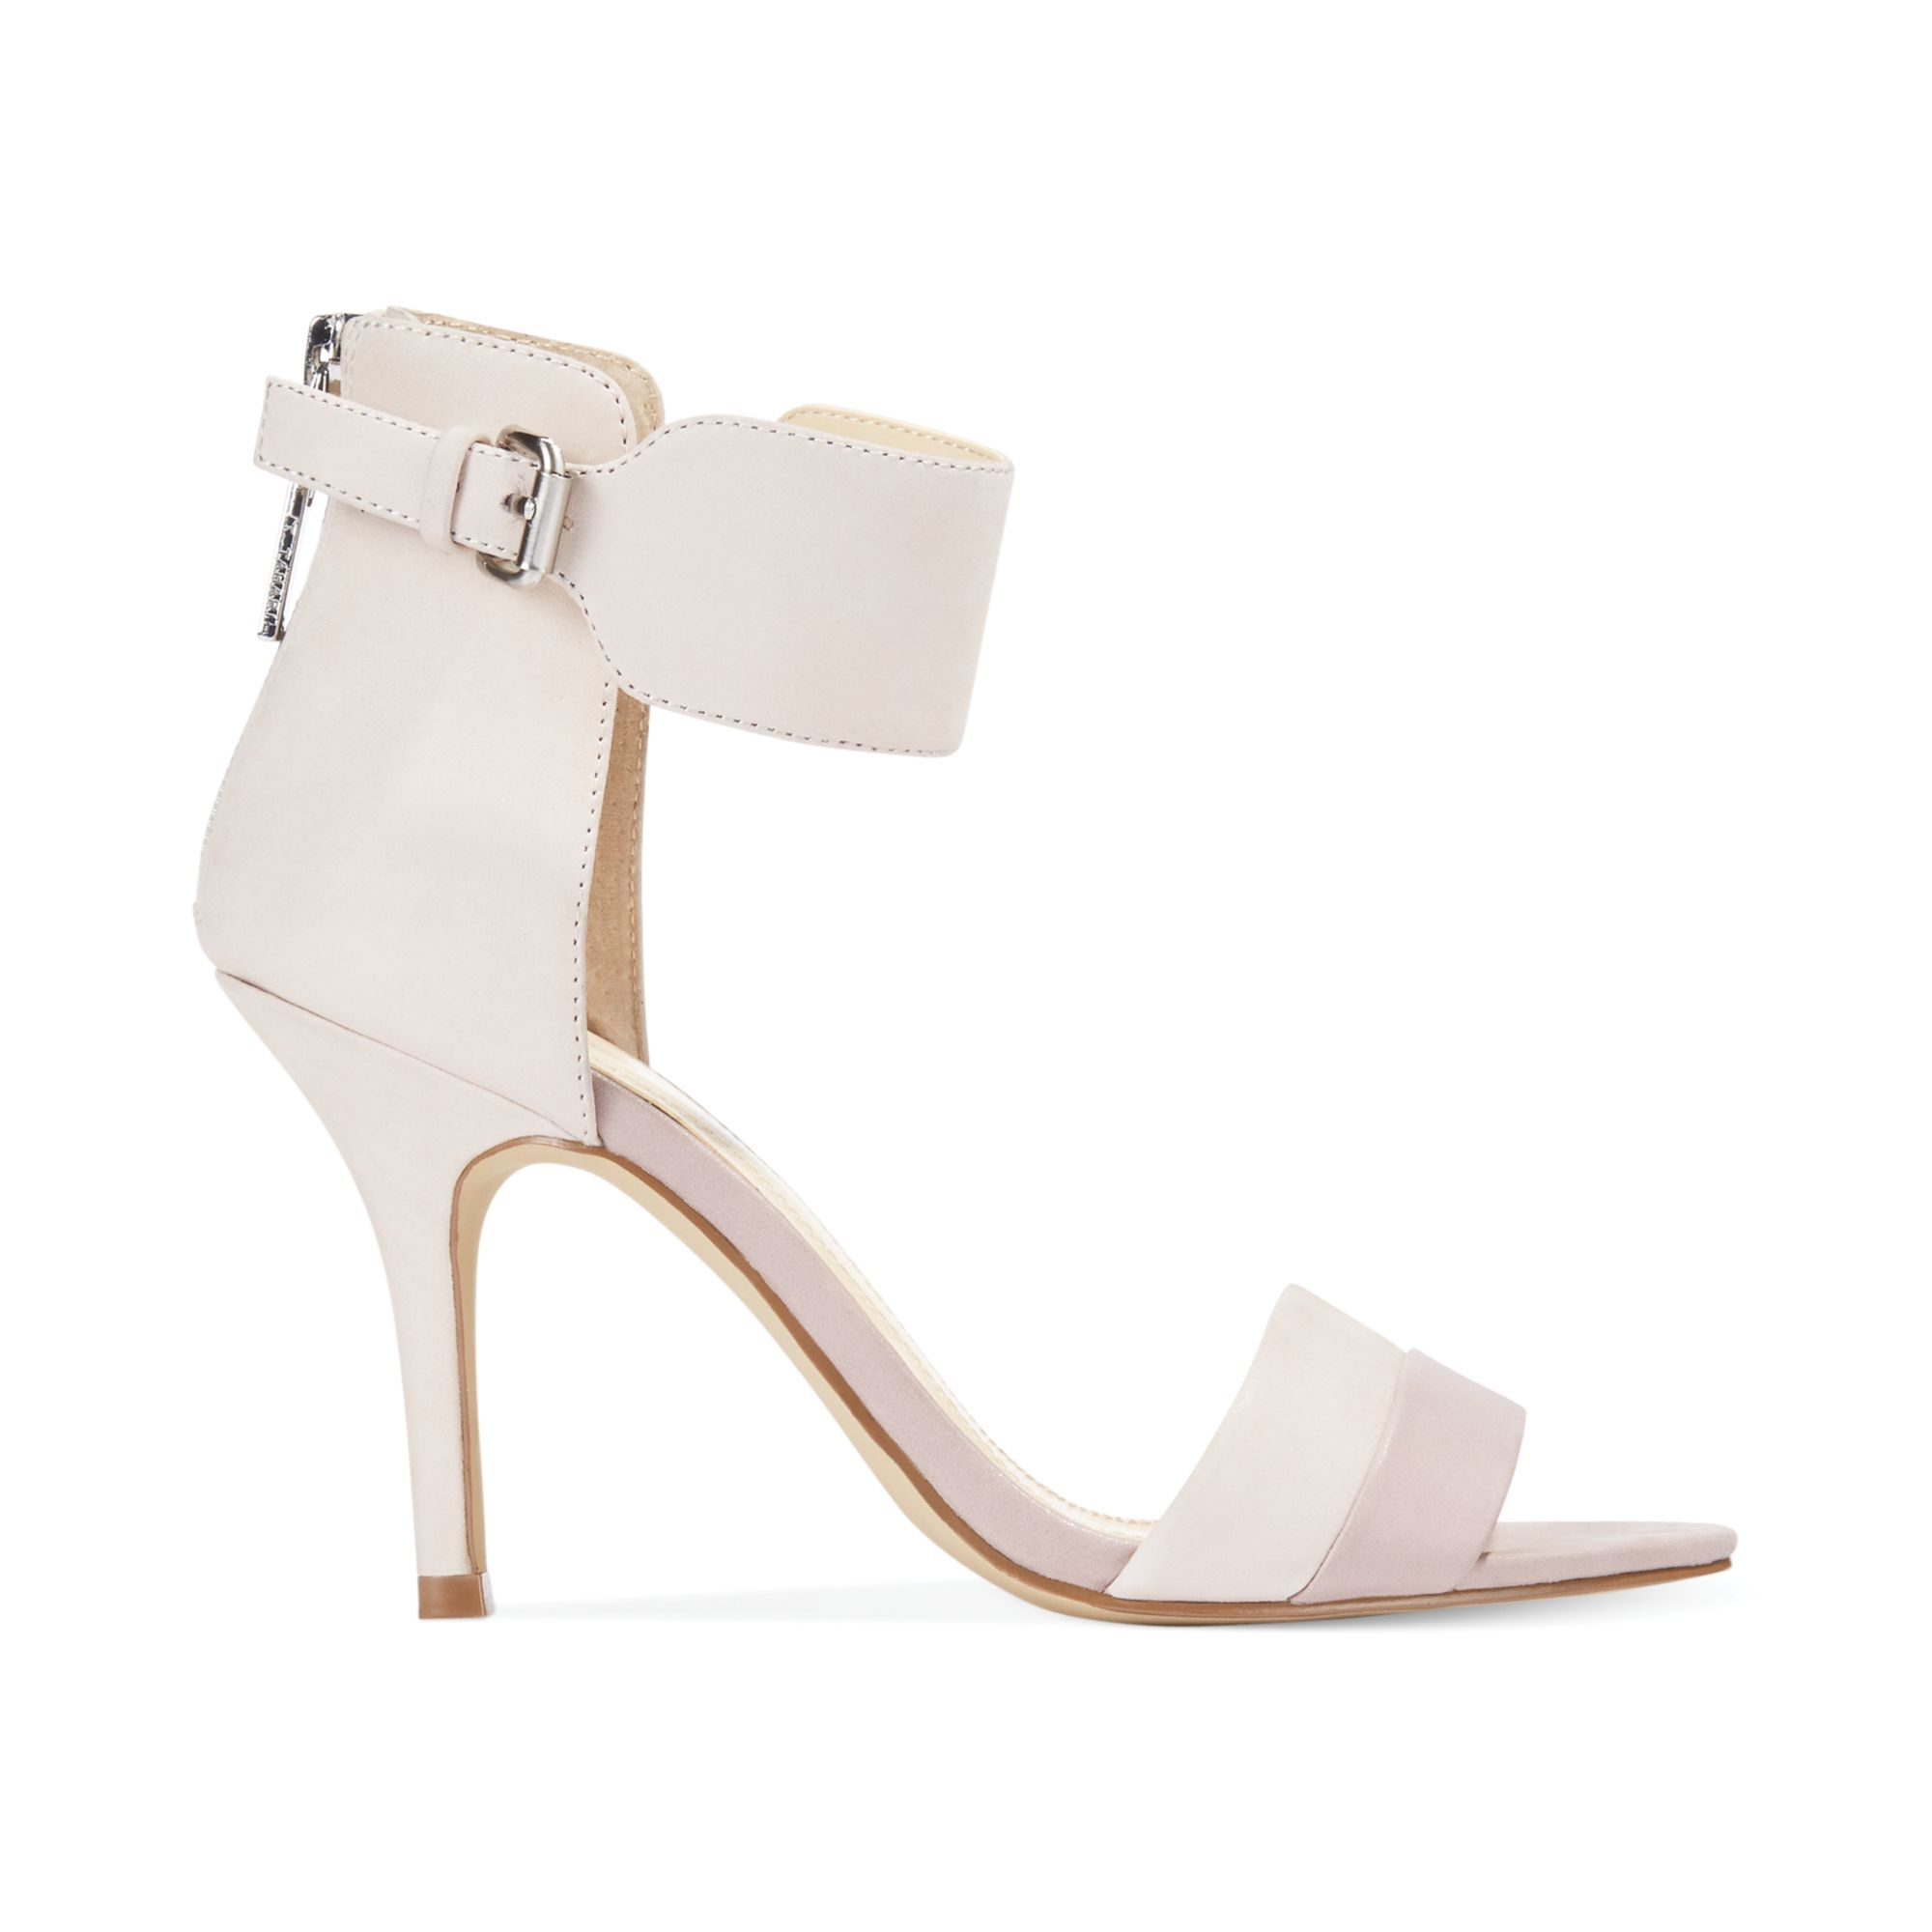 bbdb5e1ae95 Lyst - Tahari Laura Two Piece Sandals in White